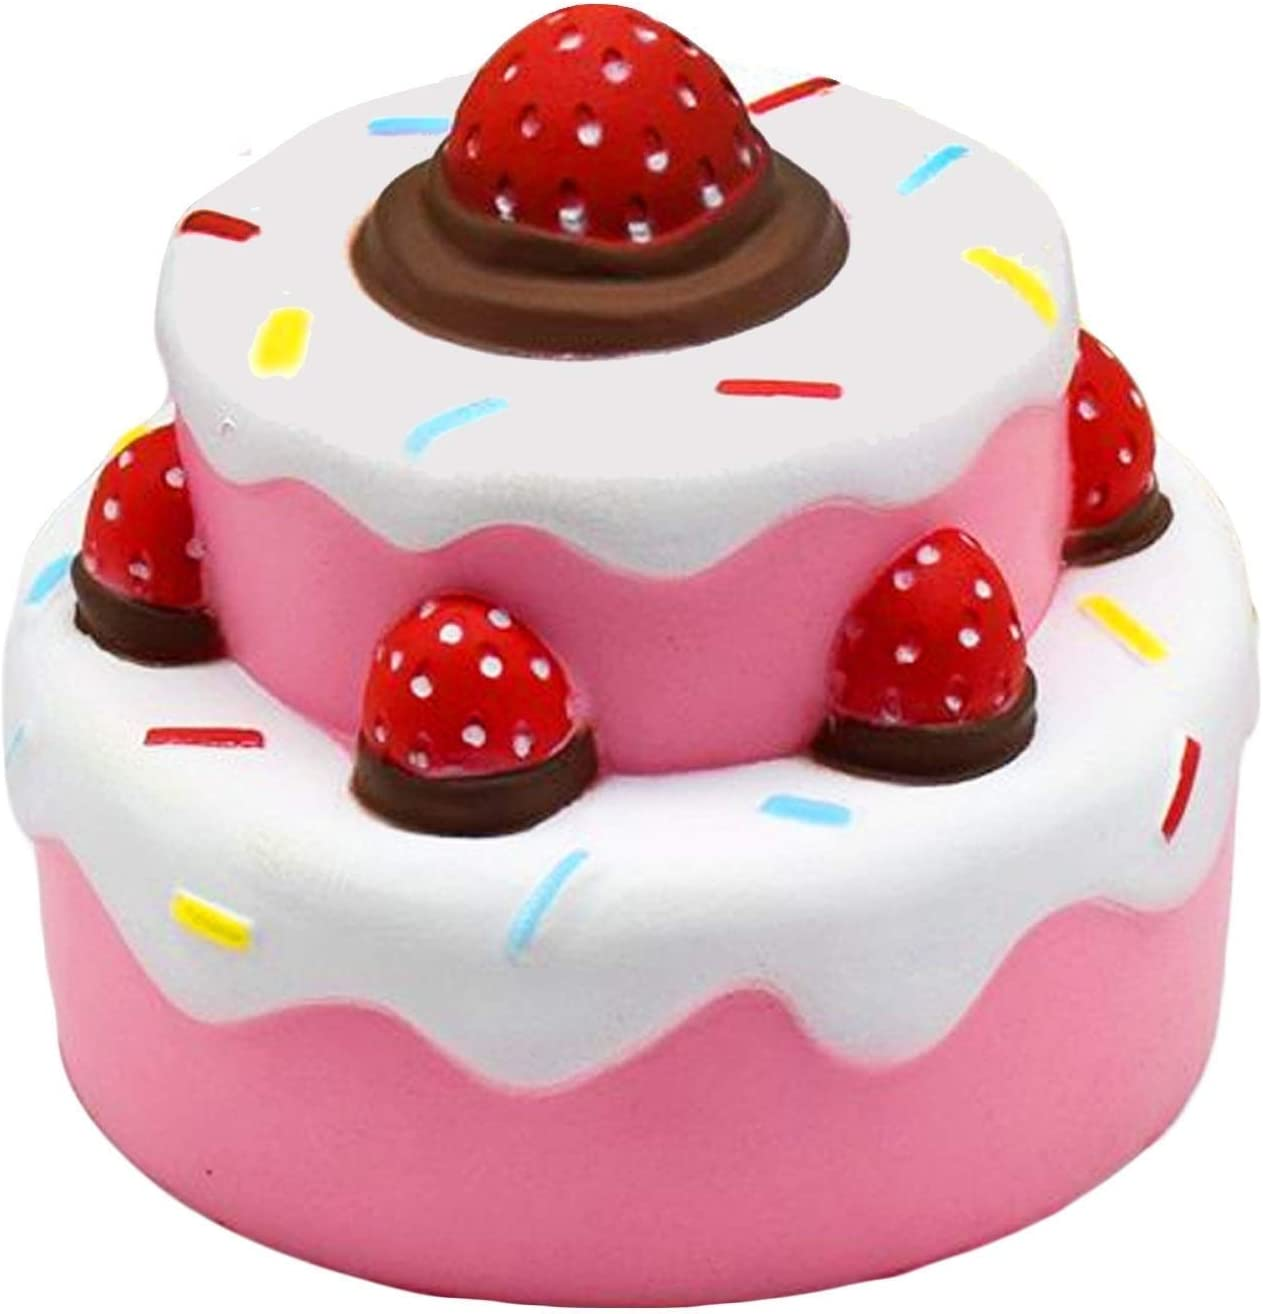 BCHENG Jumbo squishies Super Soft Squishy Toys Slow Rising Strawberry Cake Anti Stress Fidget - Stress Reliever Squeeze - Soft and Cute Squishies Toy - Squishy Kawaii - for Kids and Adults